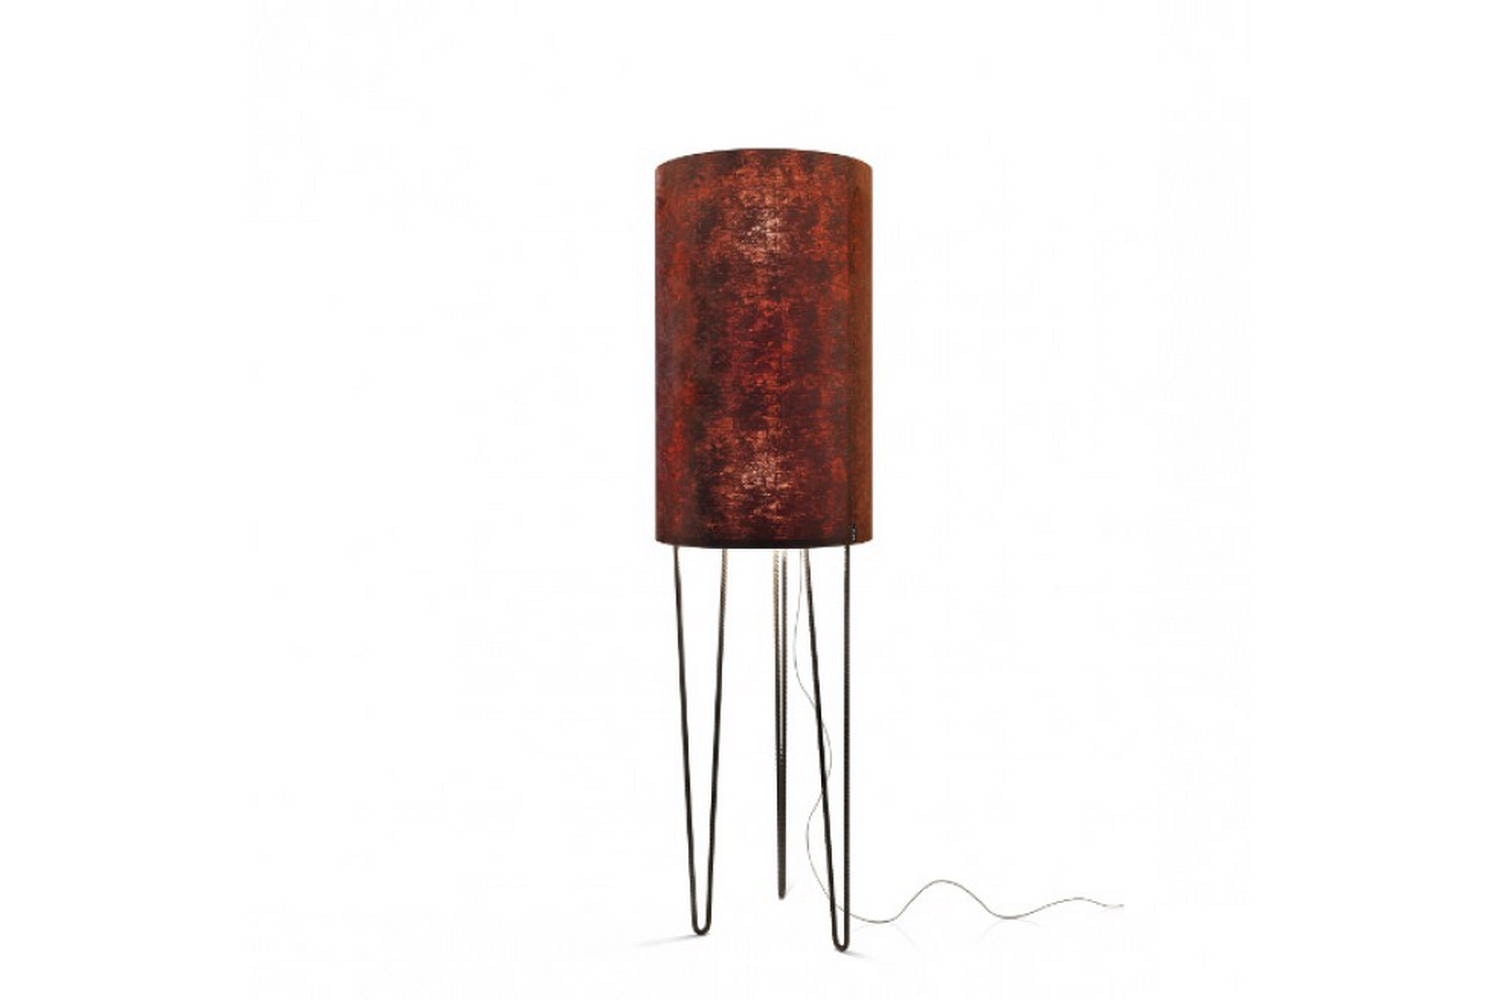 Tank Dimmer Floor Lamp by Successful Living from DIESEL for Foscarini